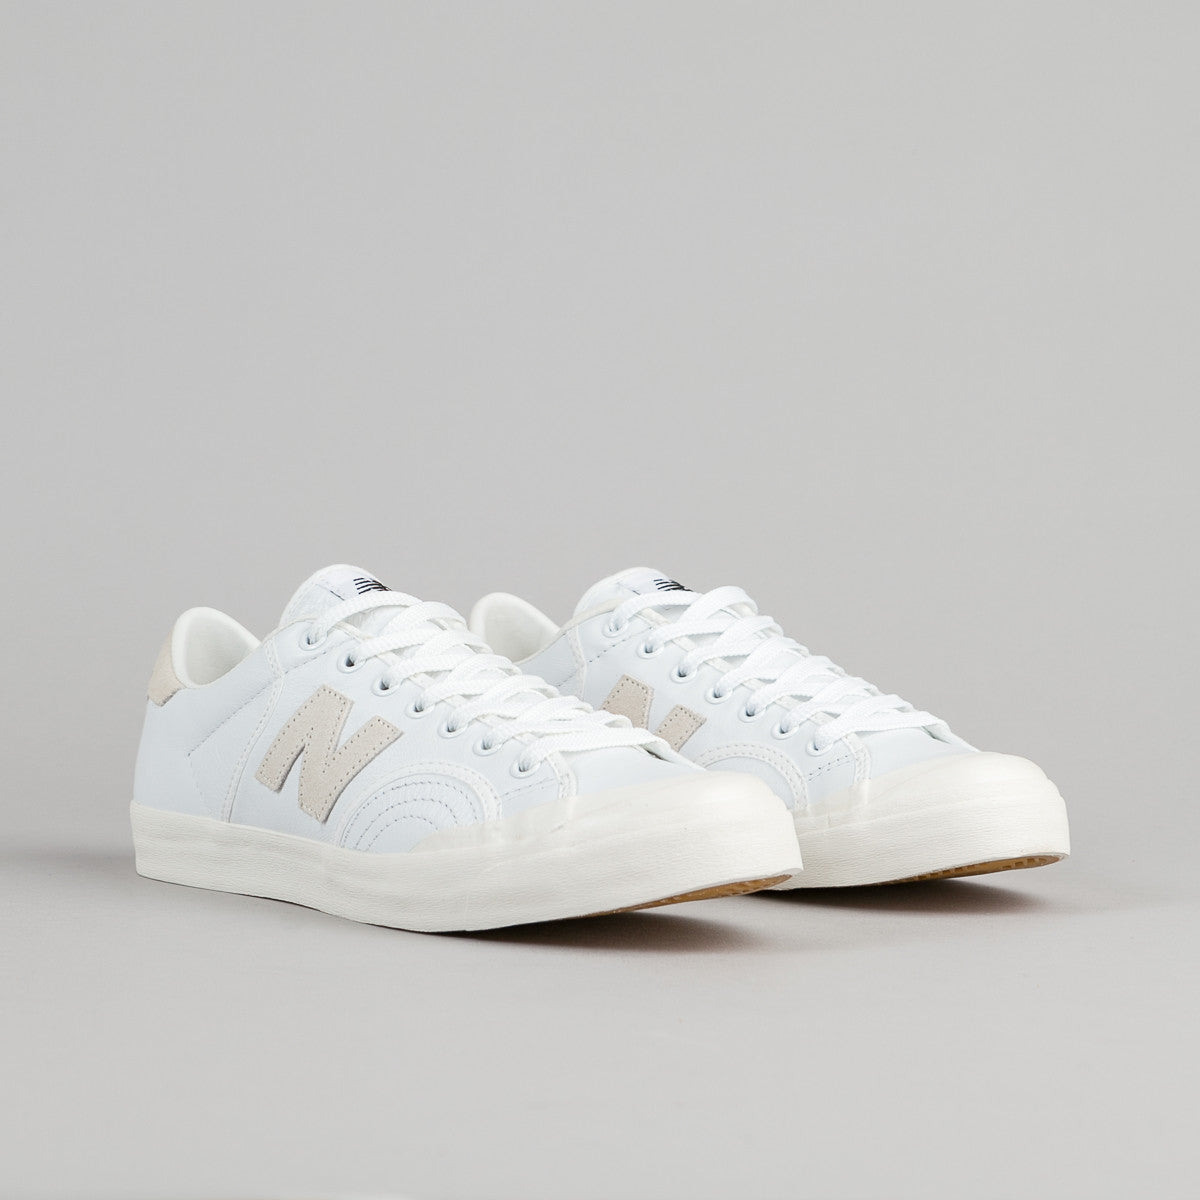 New Balance Numeric Pro Court 212 Shoes - White